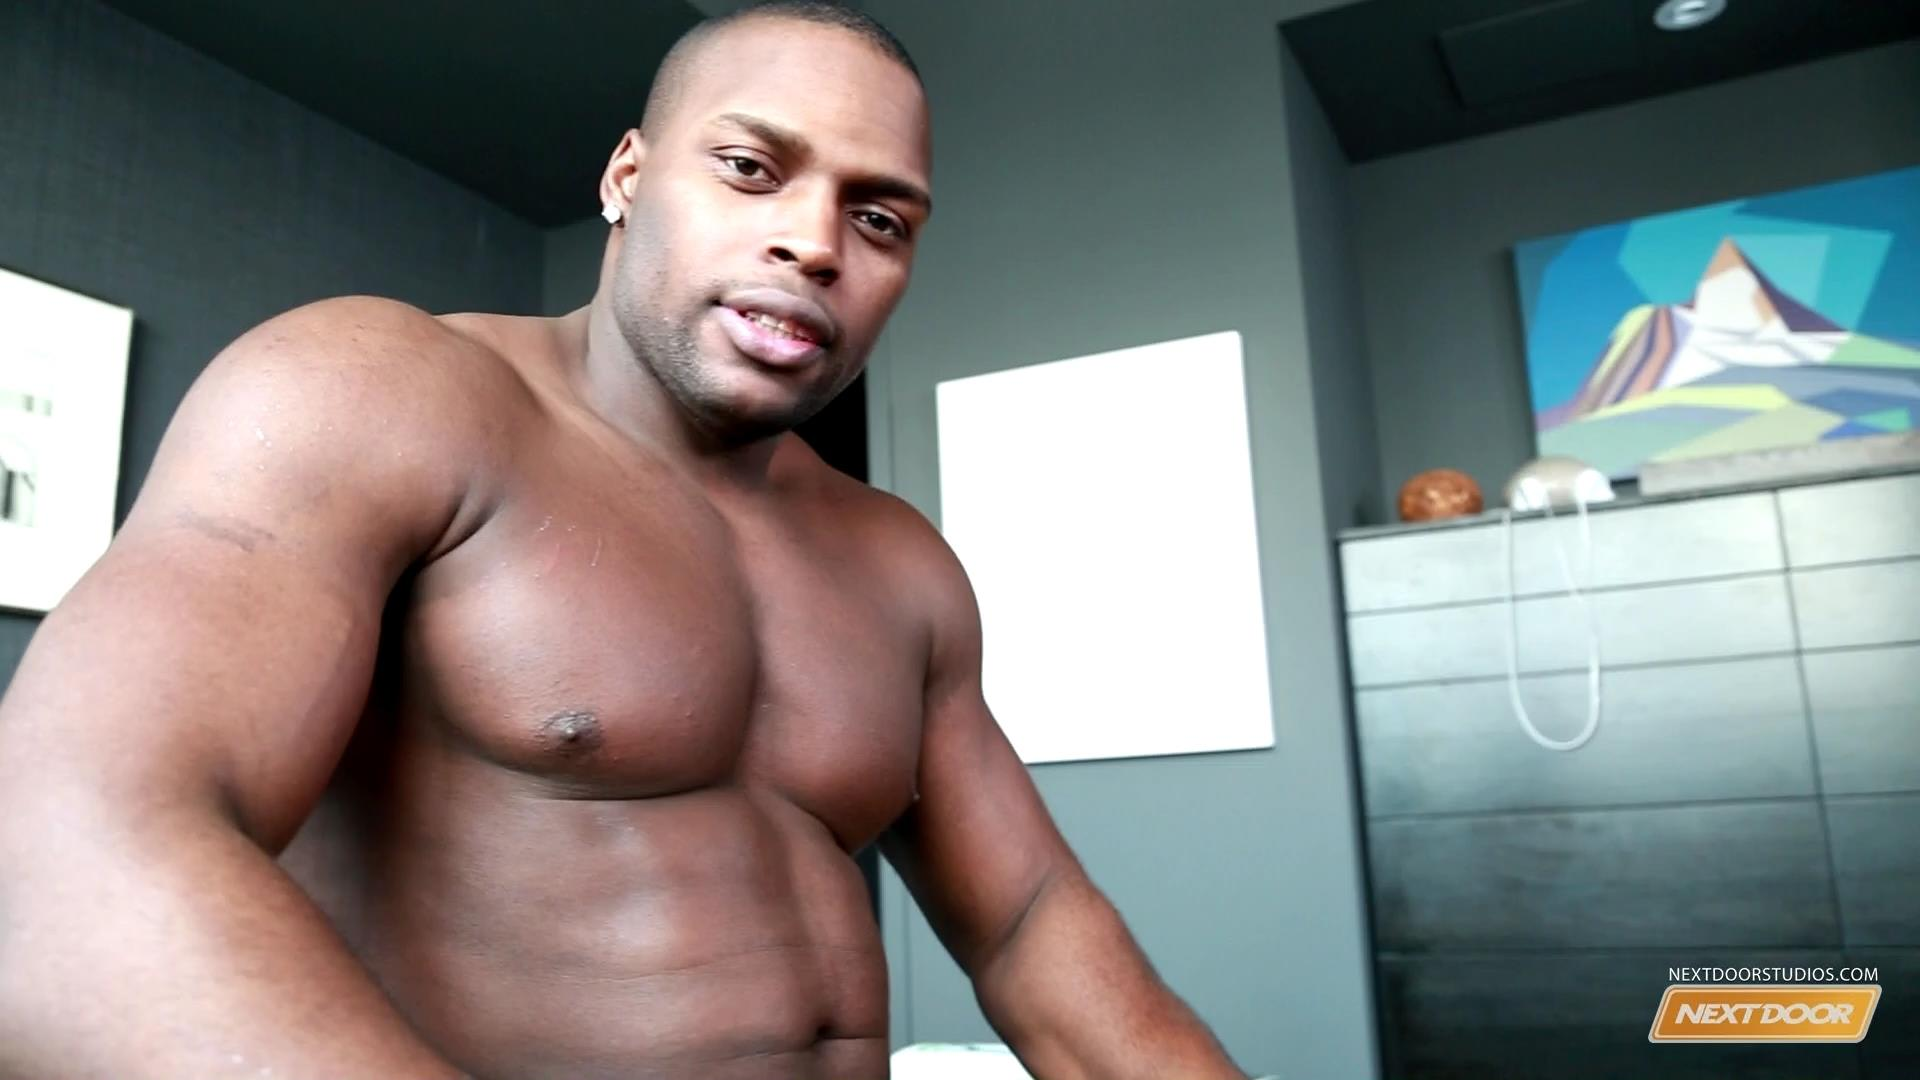 black muscular gay porn Free Big Black Muscle Porn Videos from Thumbzilla.